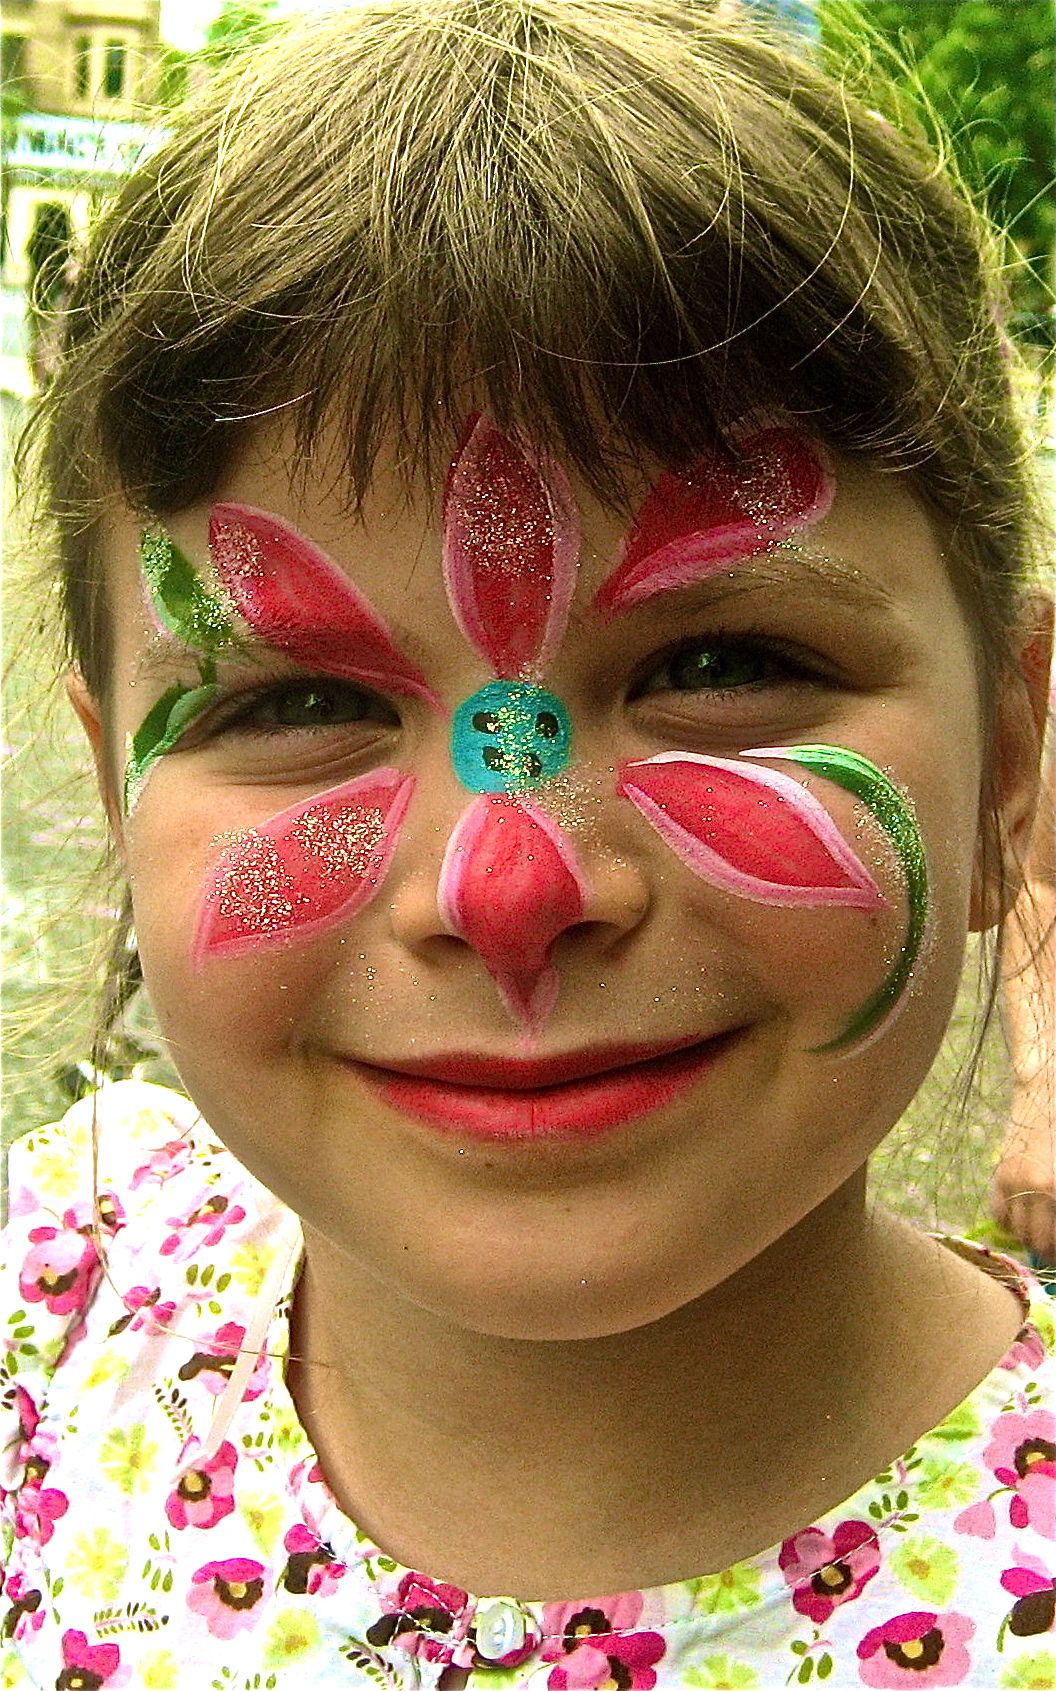 Face Painting Spring Flower Hearts Face Painting Nyc Easter Face Paint Spring Flowers Heart Face